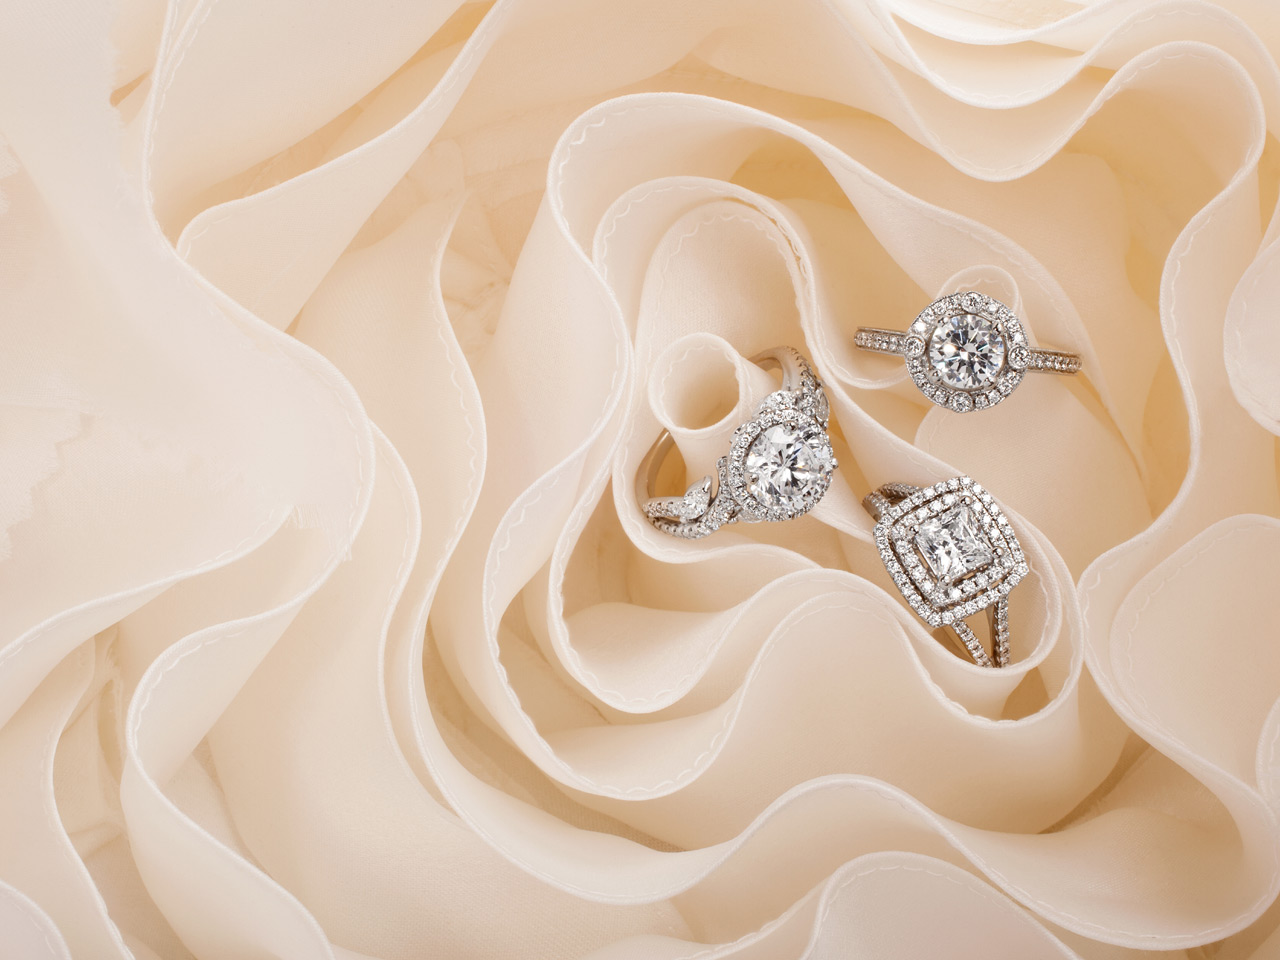 Lhuillier_rings_group1-0006